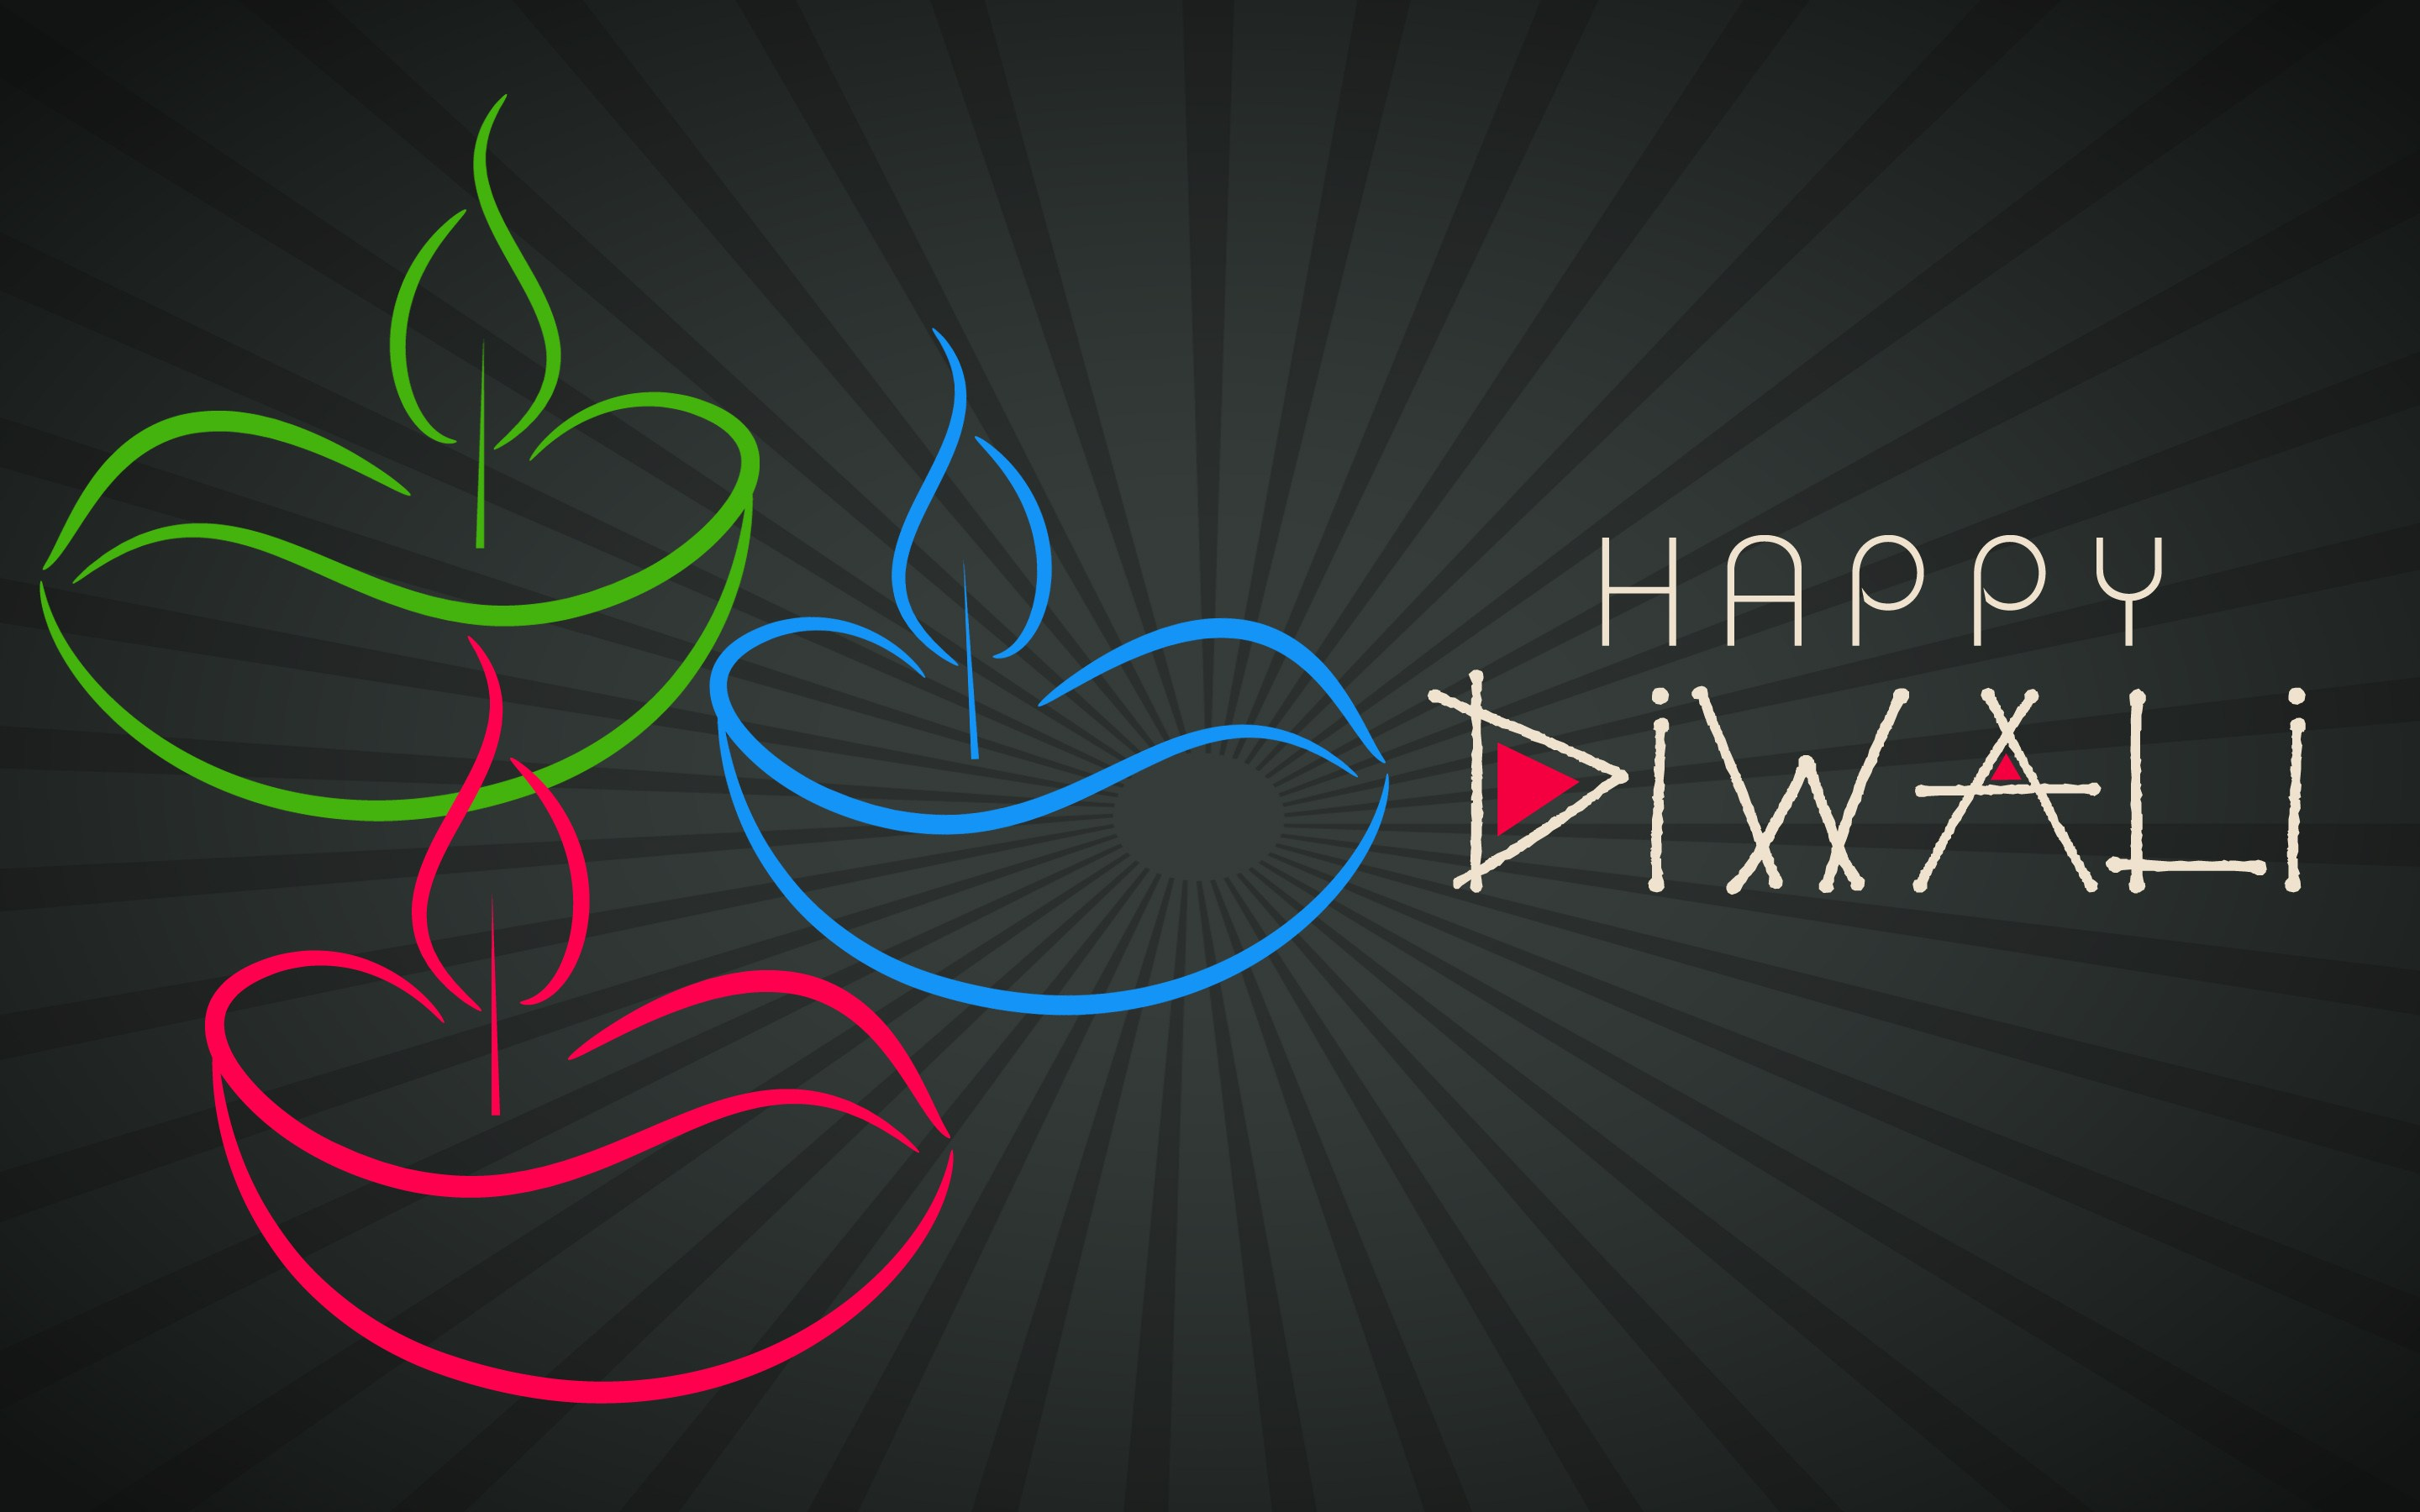 happy shubh diwali deepavali greetings indian festival lights hd wallpaper